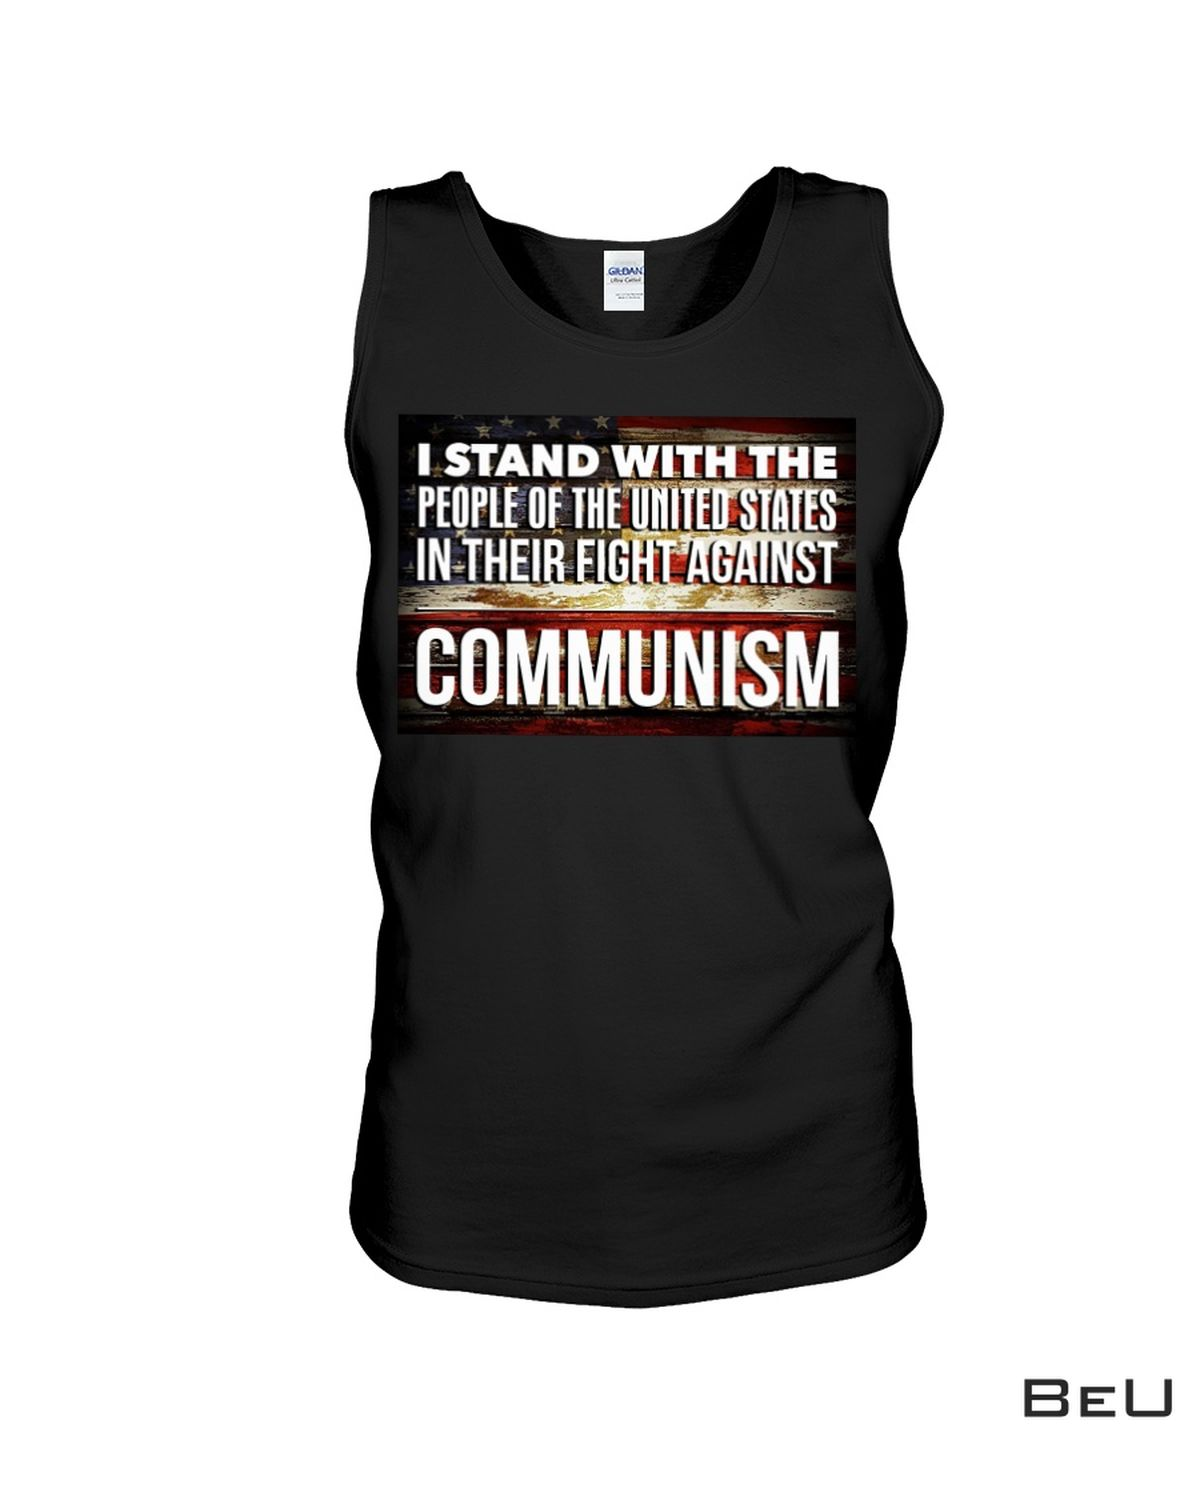 I Stand With The People Of The United States In Their Fight Against Communism Shirt c